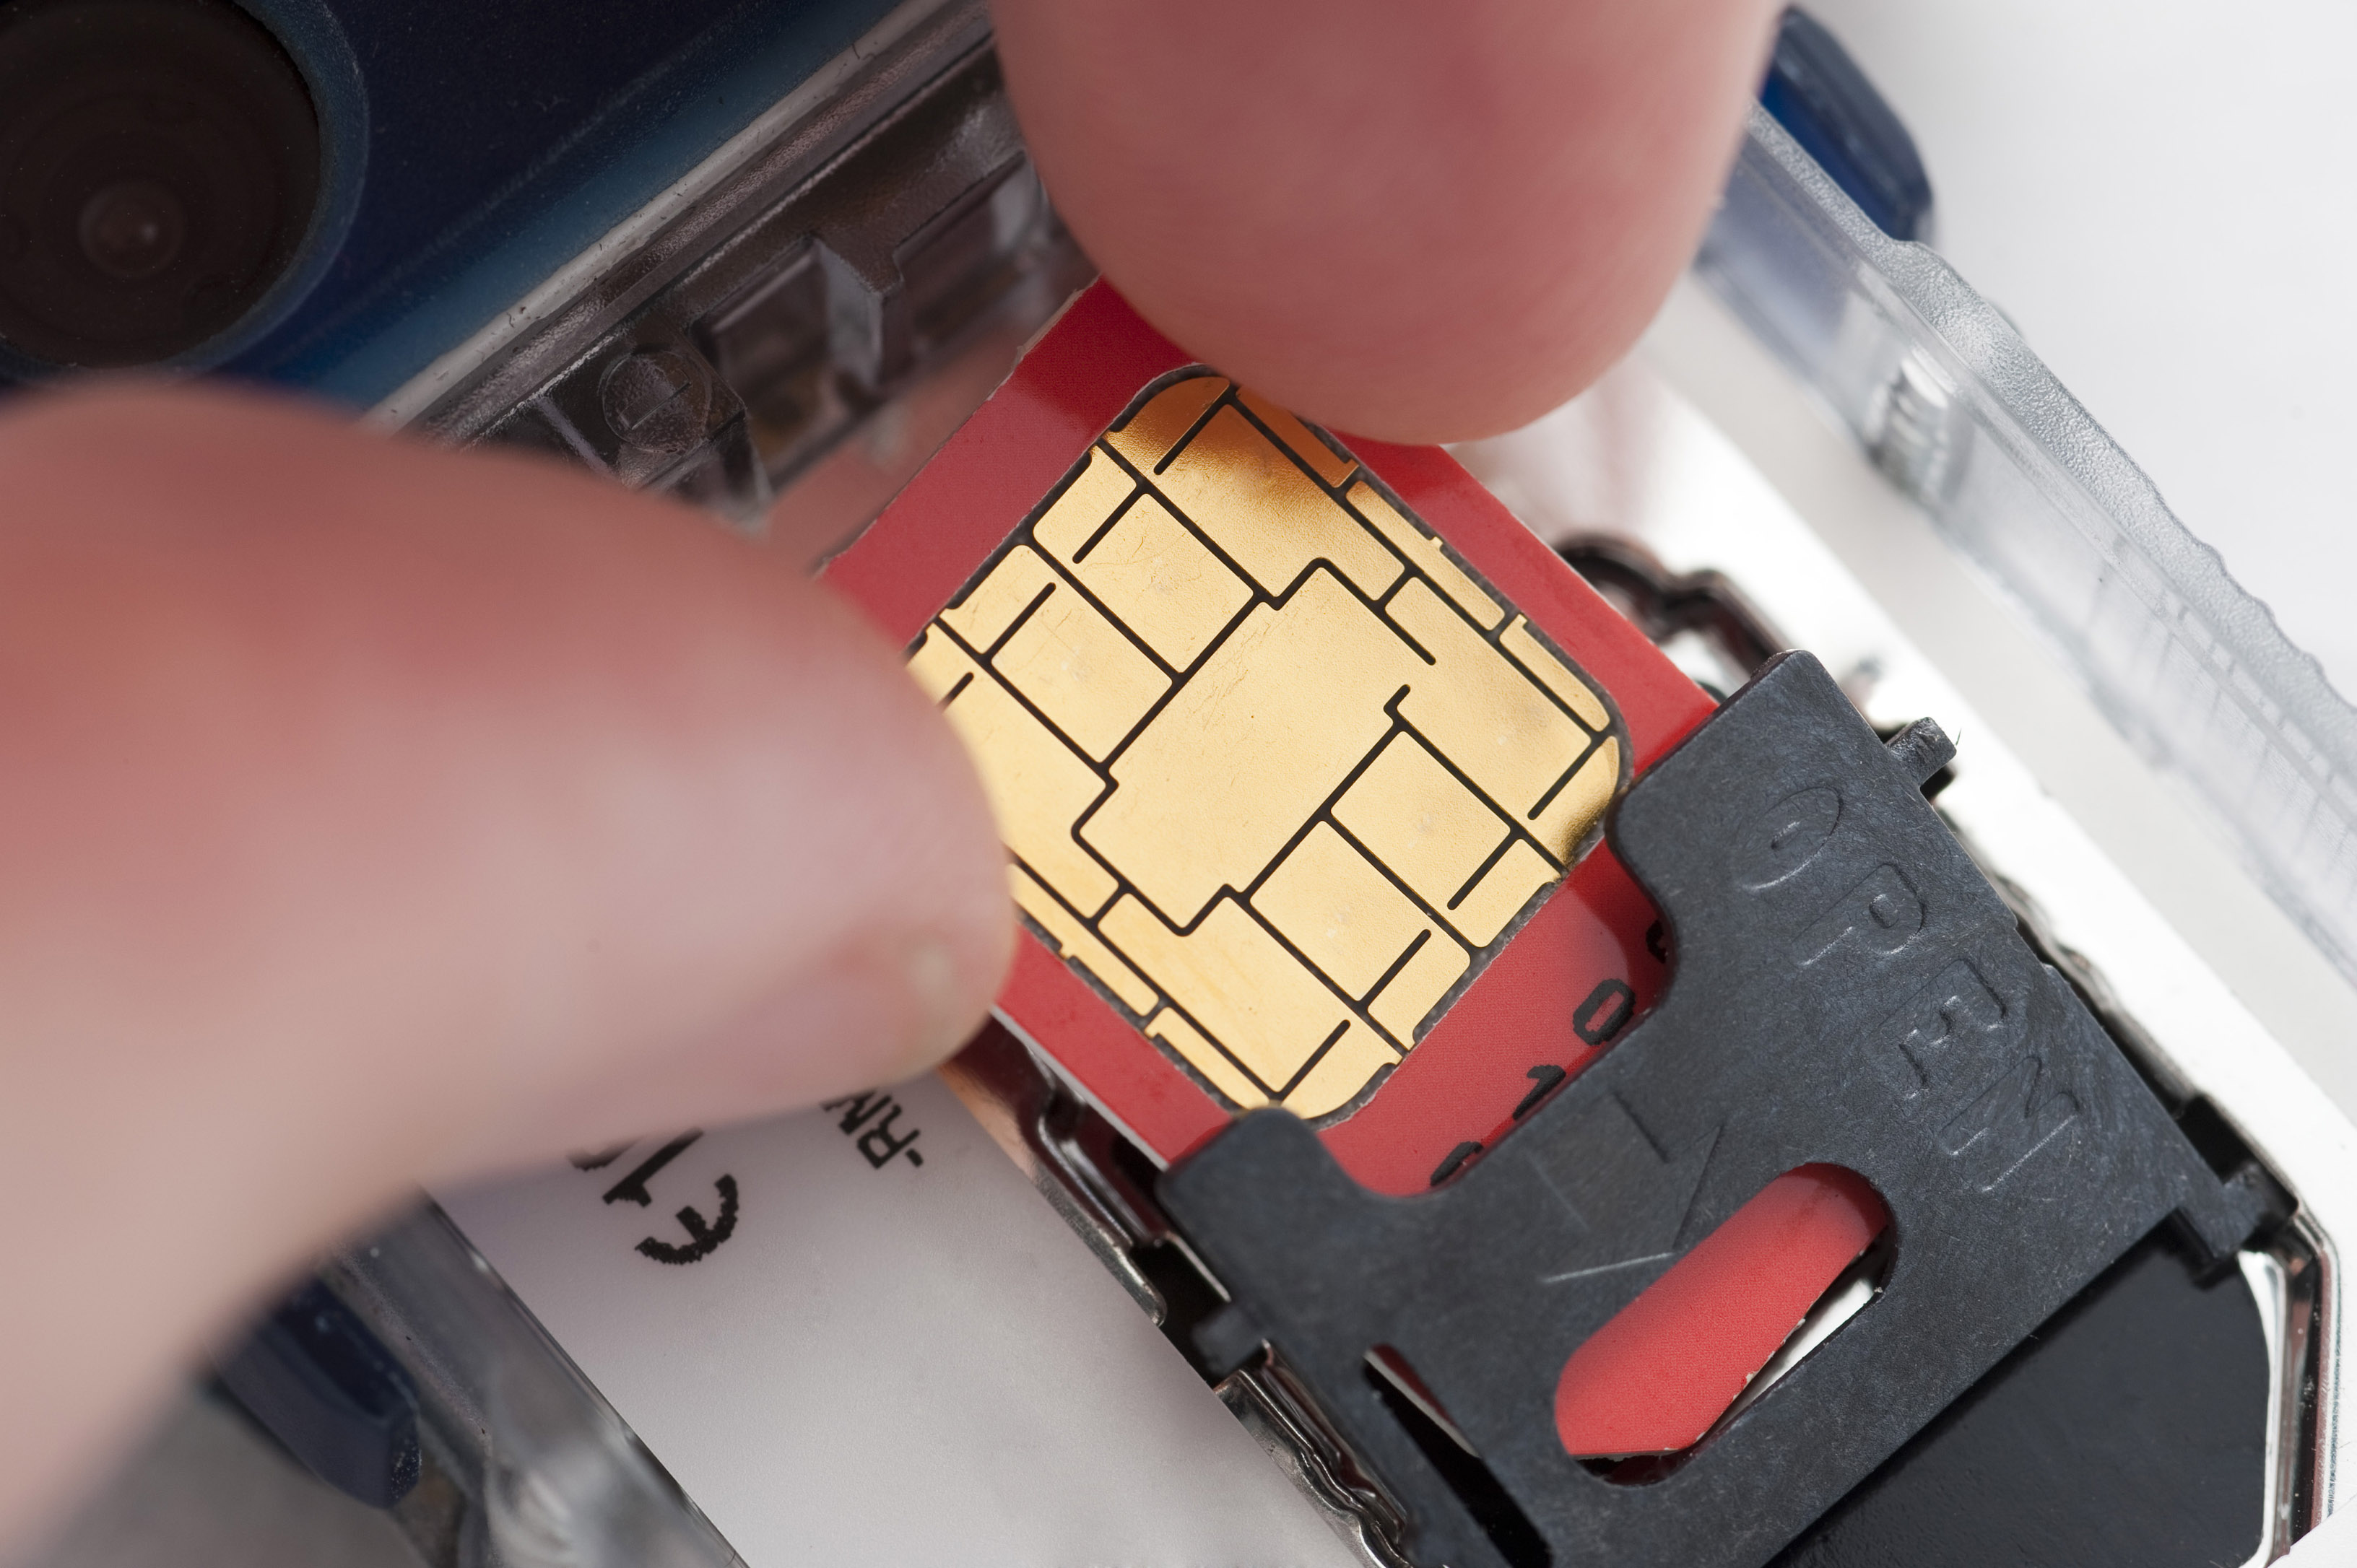 inserting a sim into a mobile phone